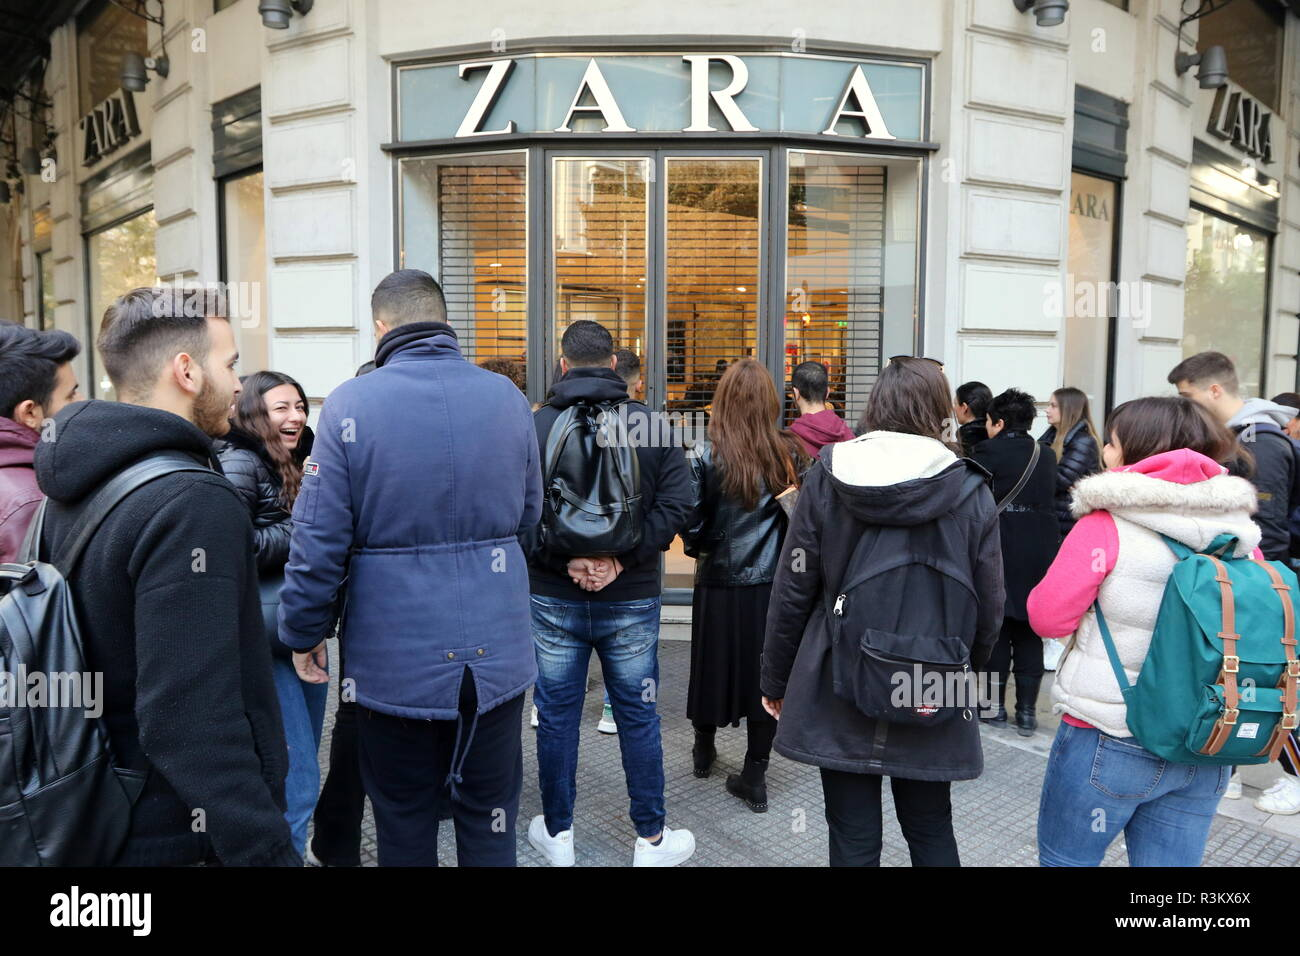 390e2913 Thessaloniki, Greece, November 23rd, 2018. Shoppers queue up in front of  Zara store in Thessaloniki's Tsimisky street on Black Friday.